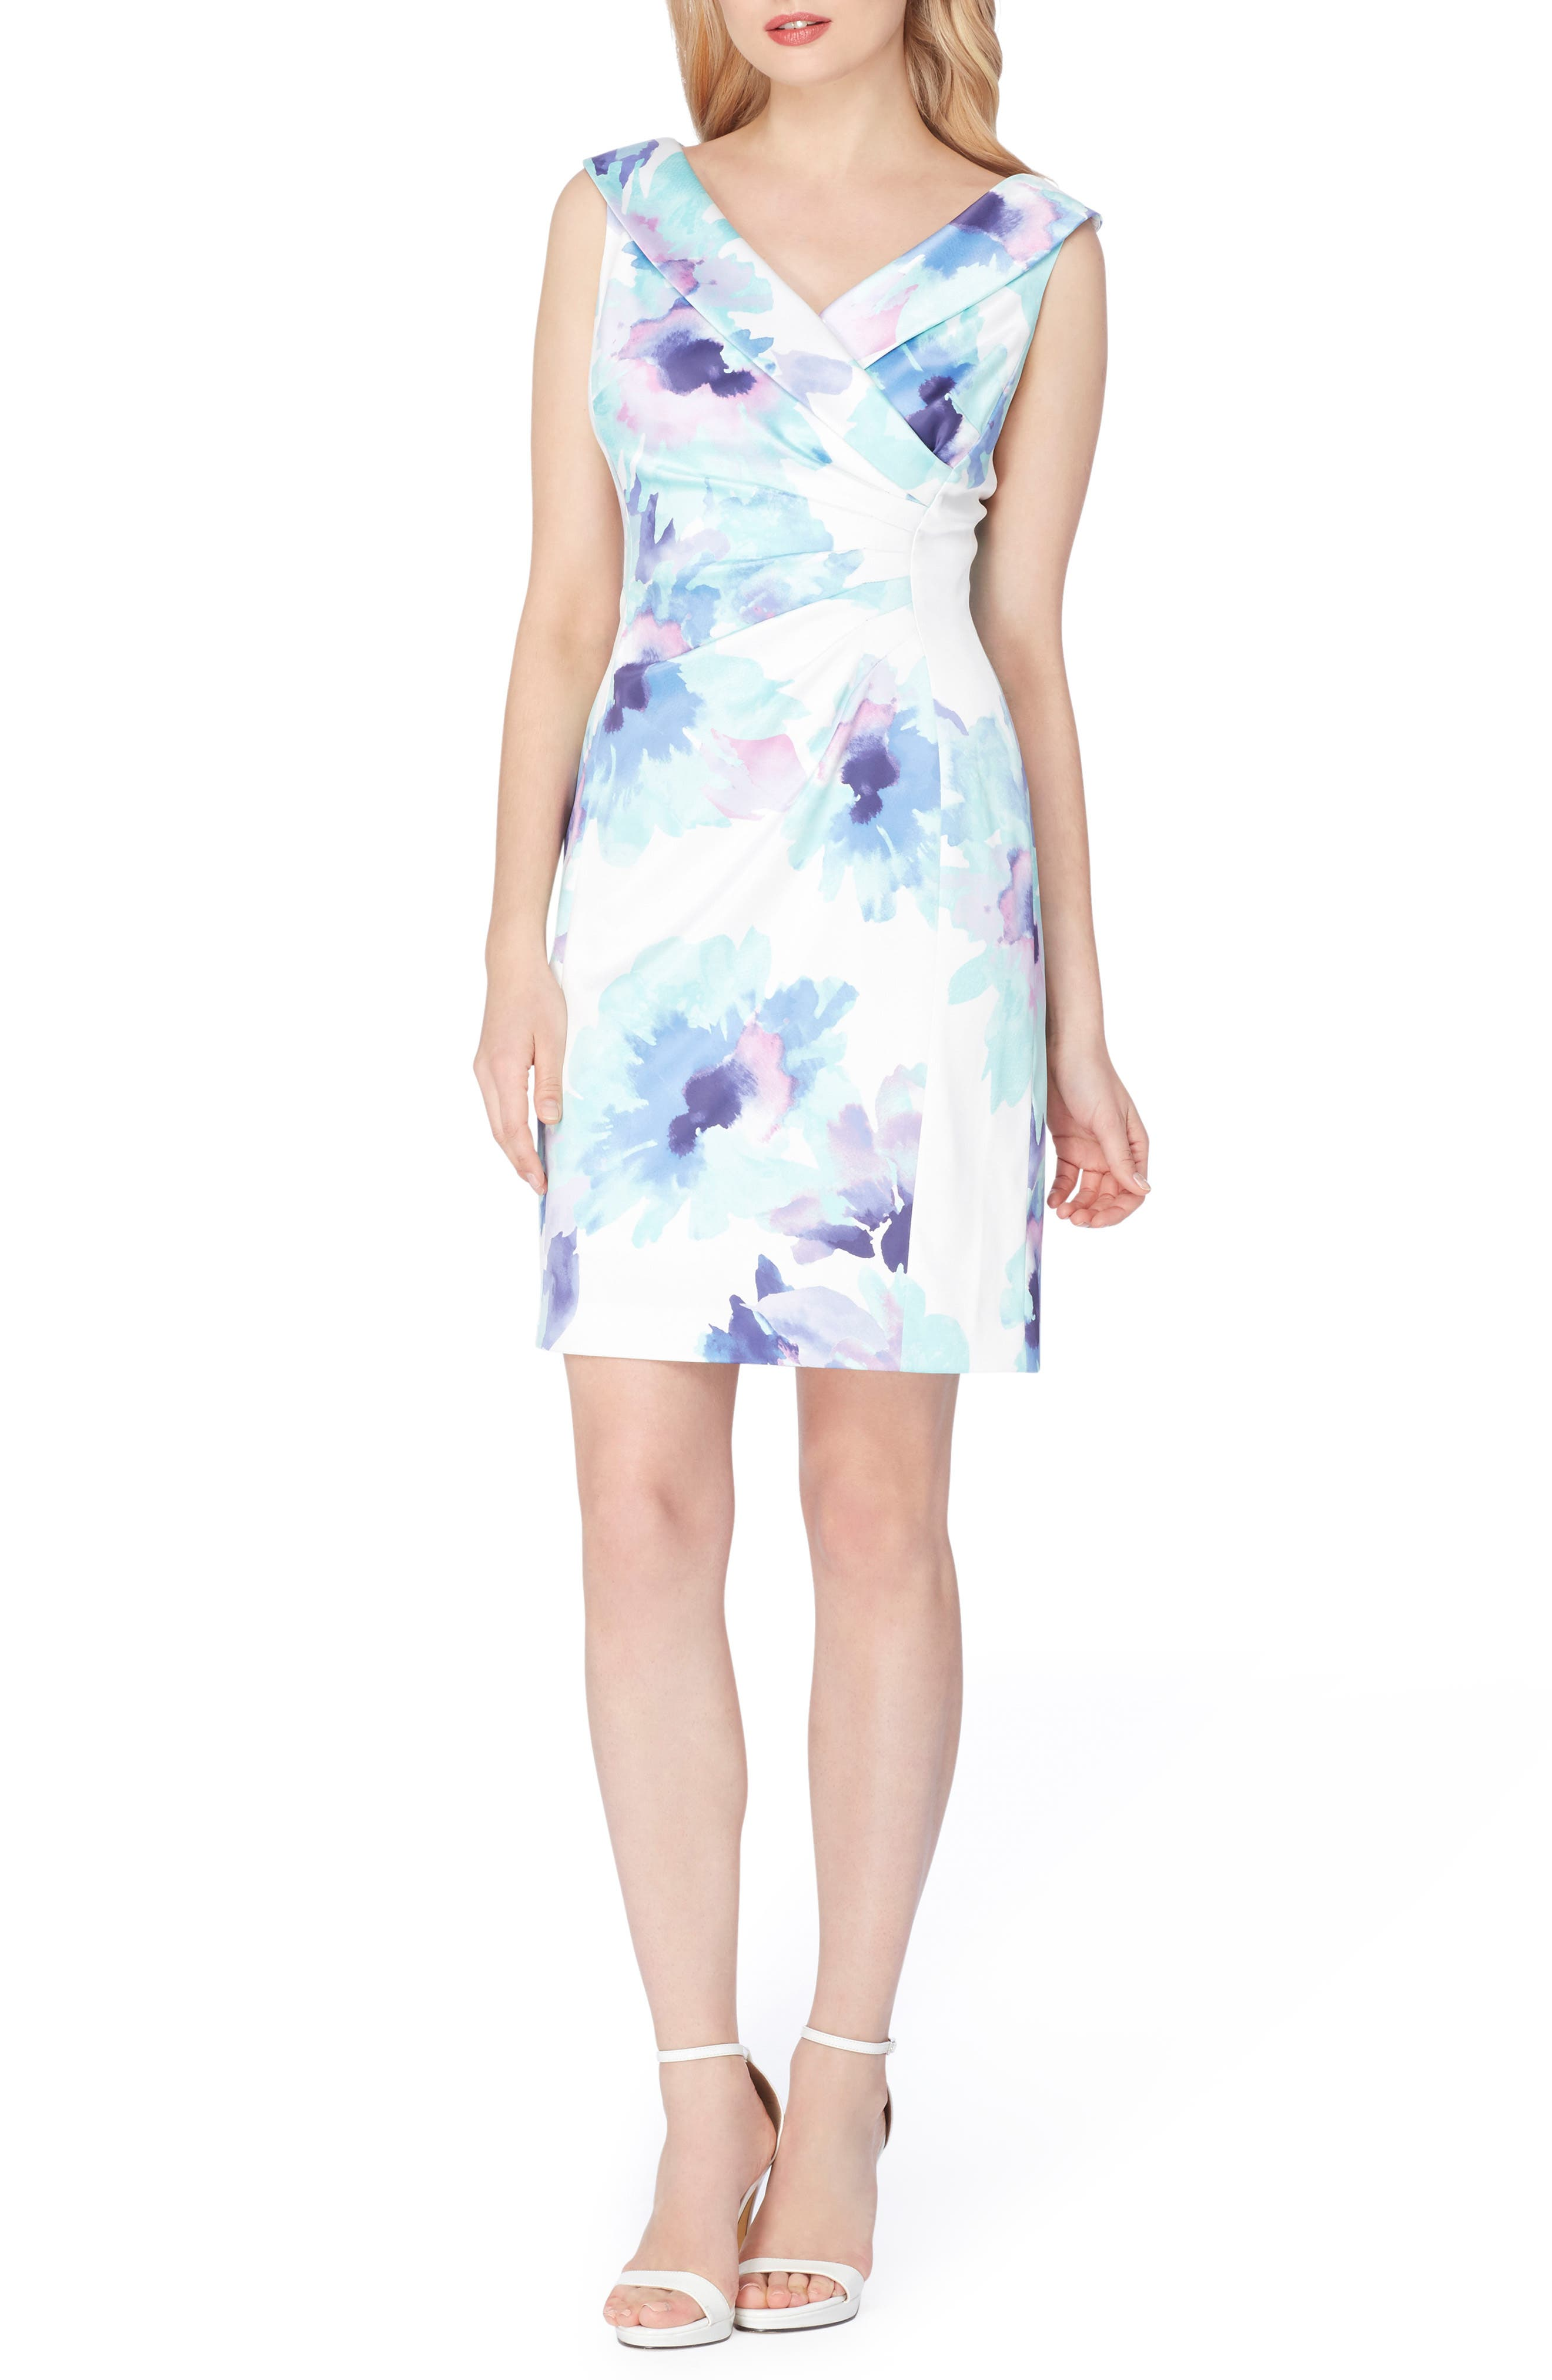 Stretch Satin Sheath Dress,                         Main,                         color, Ivory/ Turquoise/ Royal